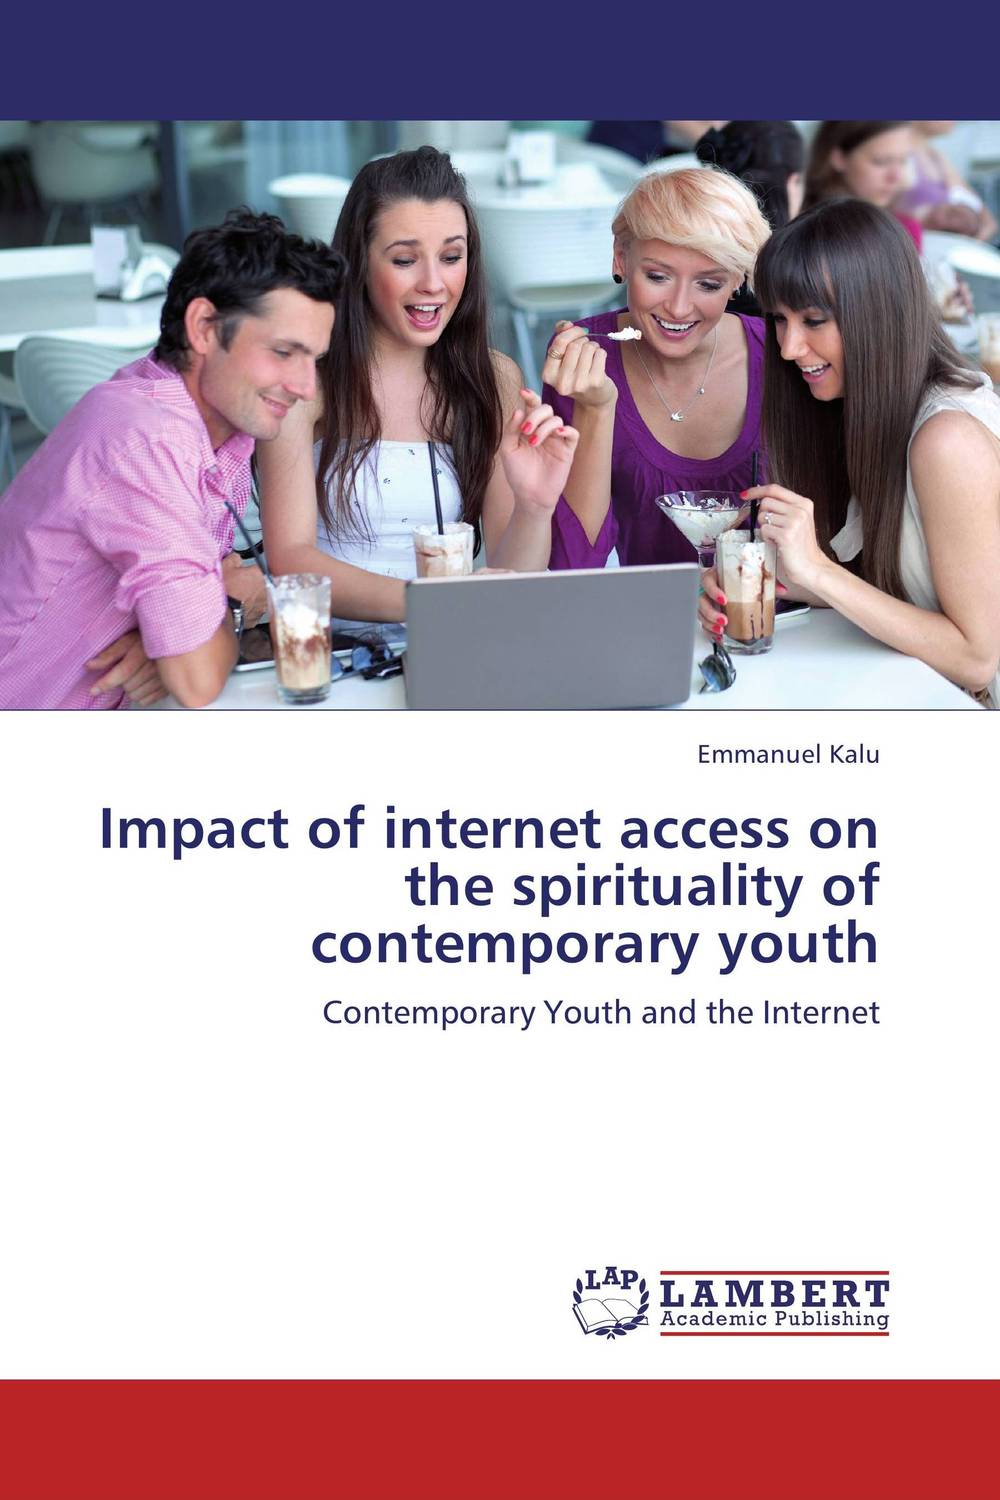 Impact of internet access on the spirituality of contemporary youth p susai manickam college going youth and values a study from the tv impact perspective